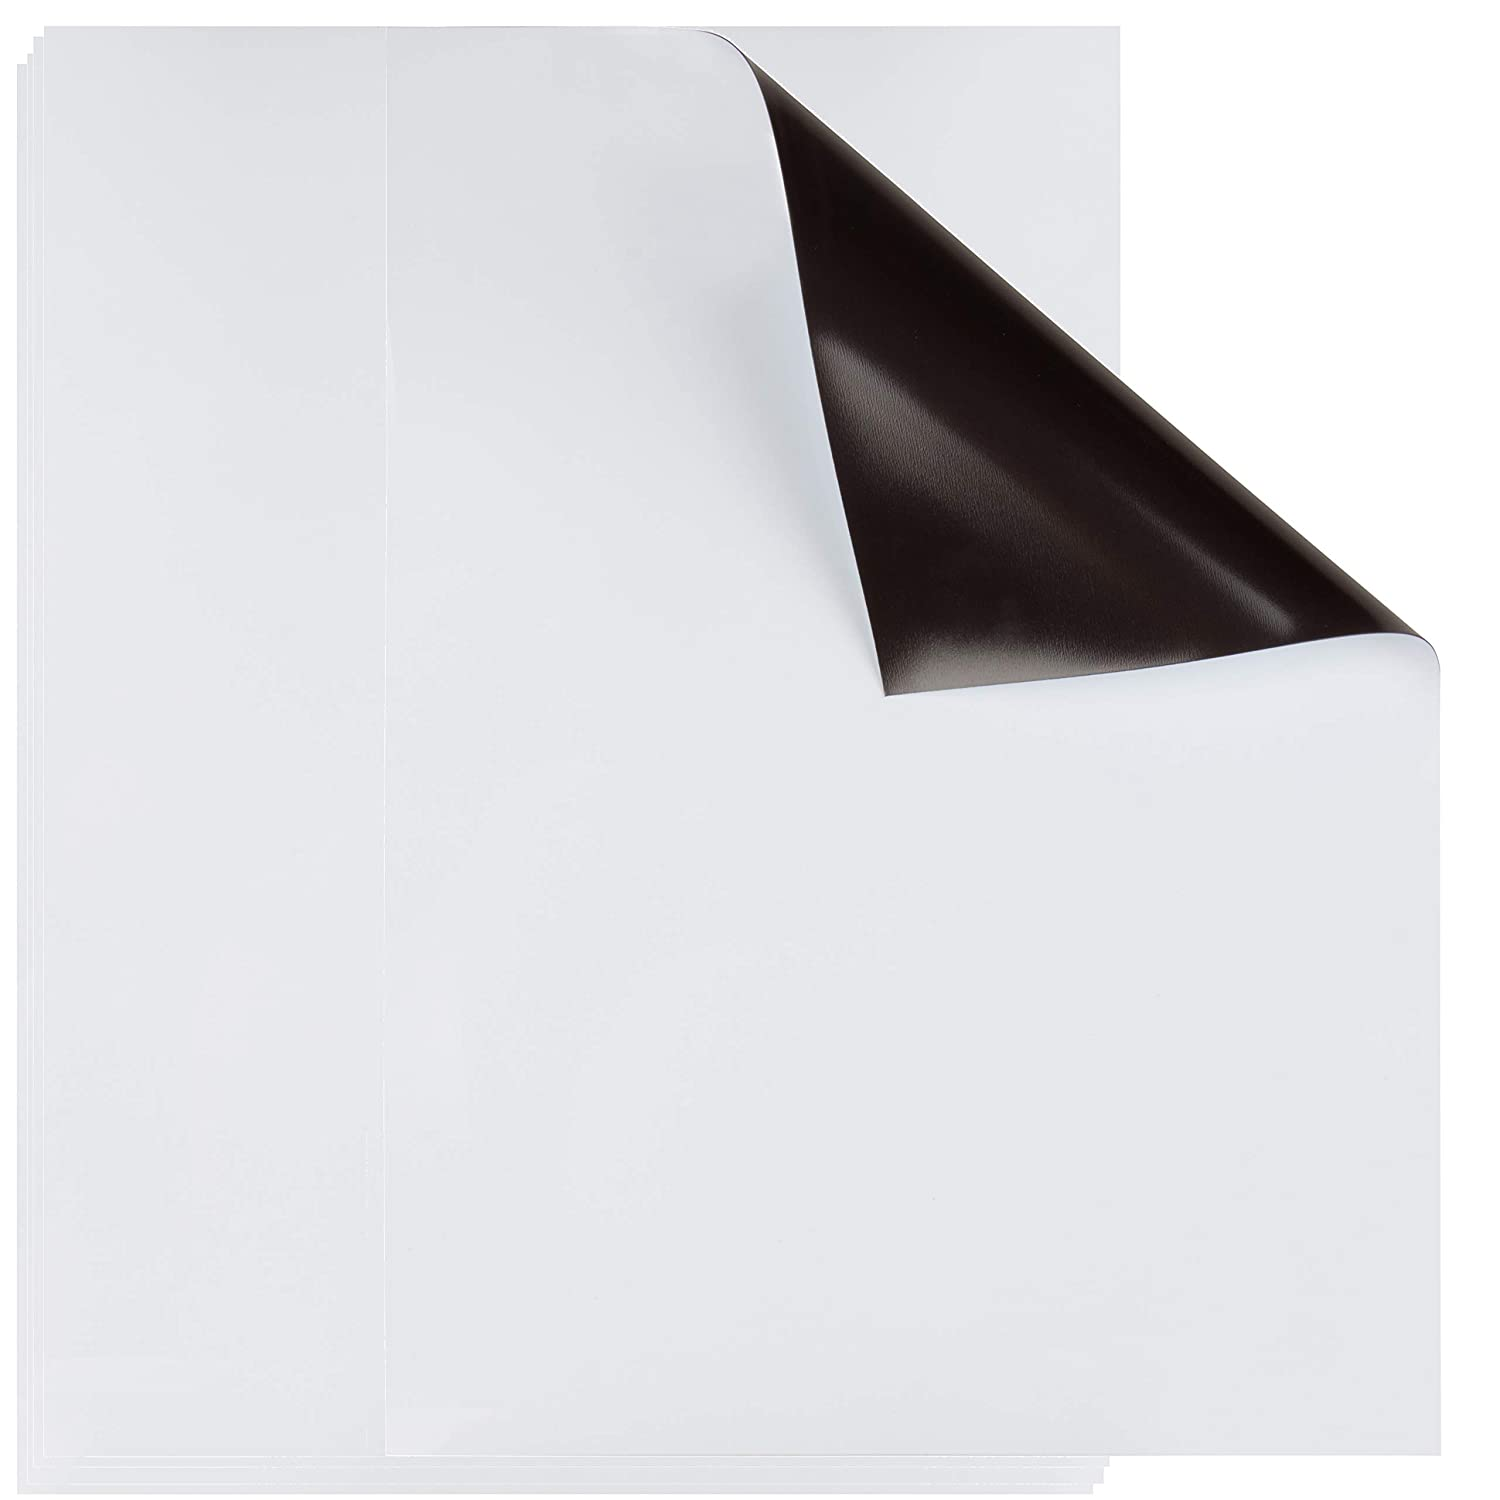 Magnetic Dry Erase Sheet - 5-Pack Dry Erase Boards for Refrigerator, and Metal Surfaces, Fridge Whiteboard Sheet, White, Medium, 9 x 12 Inches